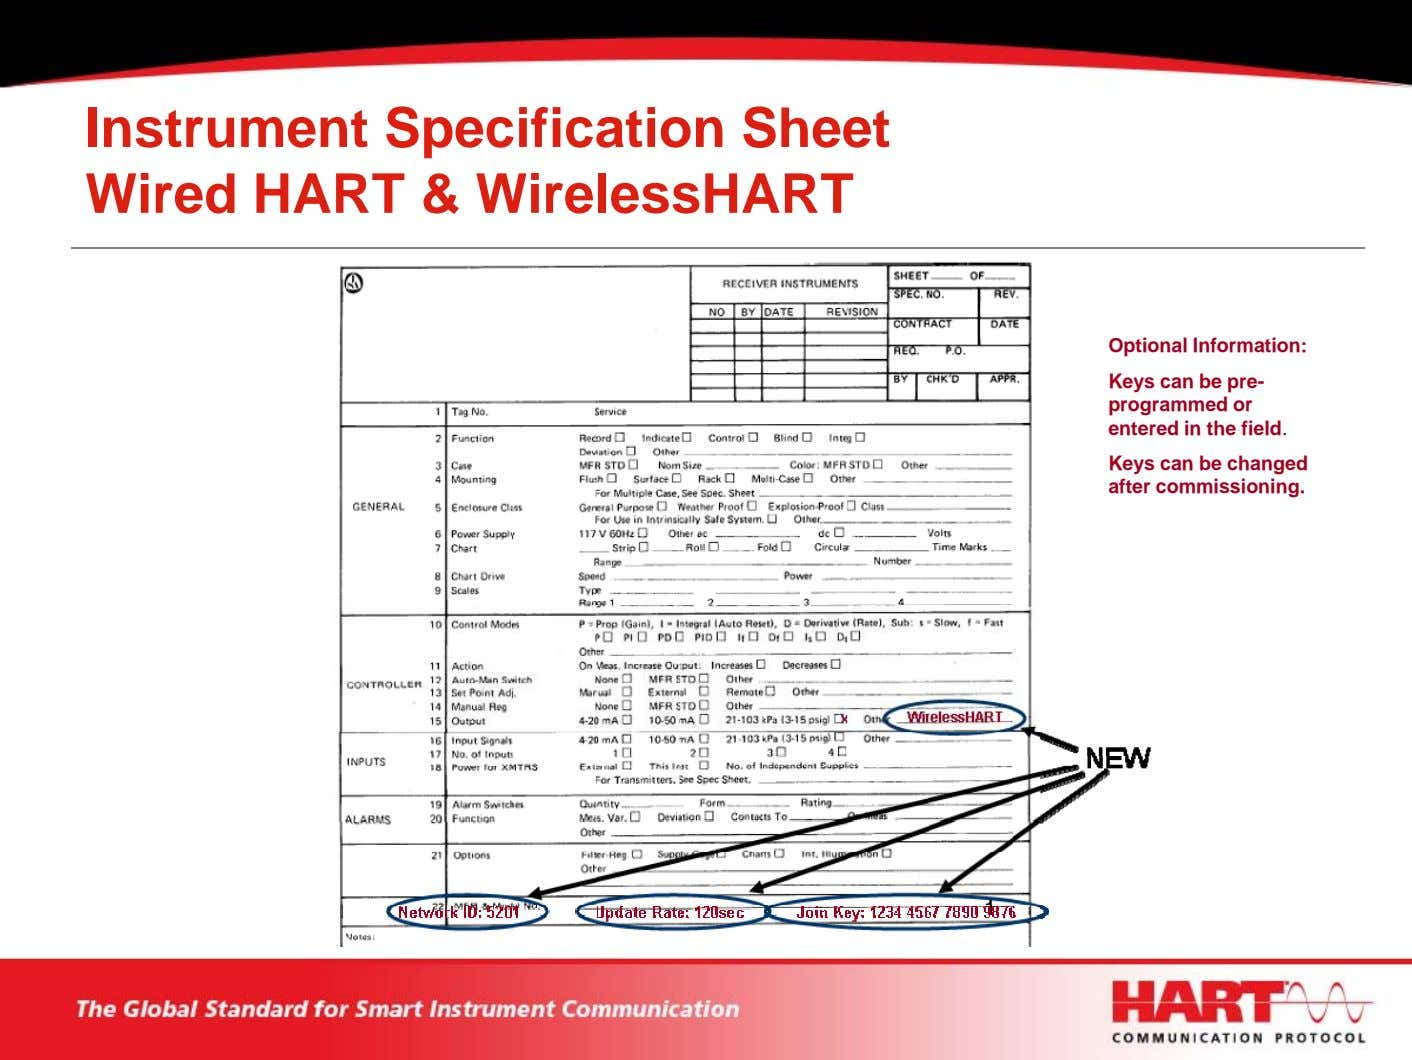 Instrument Specification Sheet Wired HART & WirelessHART Optional Information: Keys can be pre- programmed or